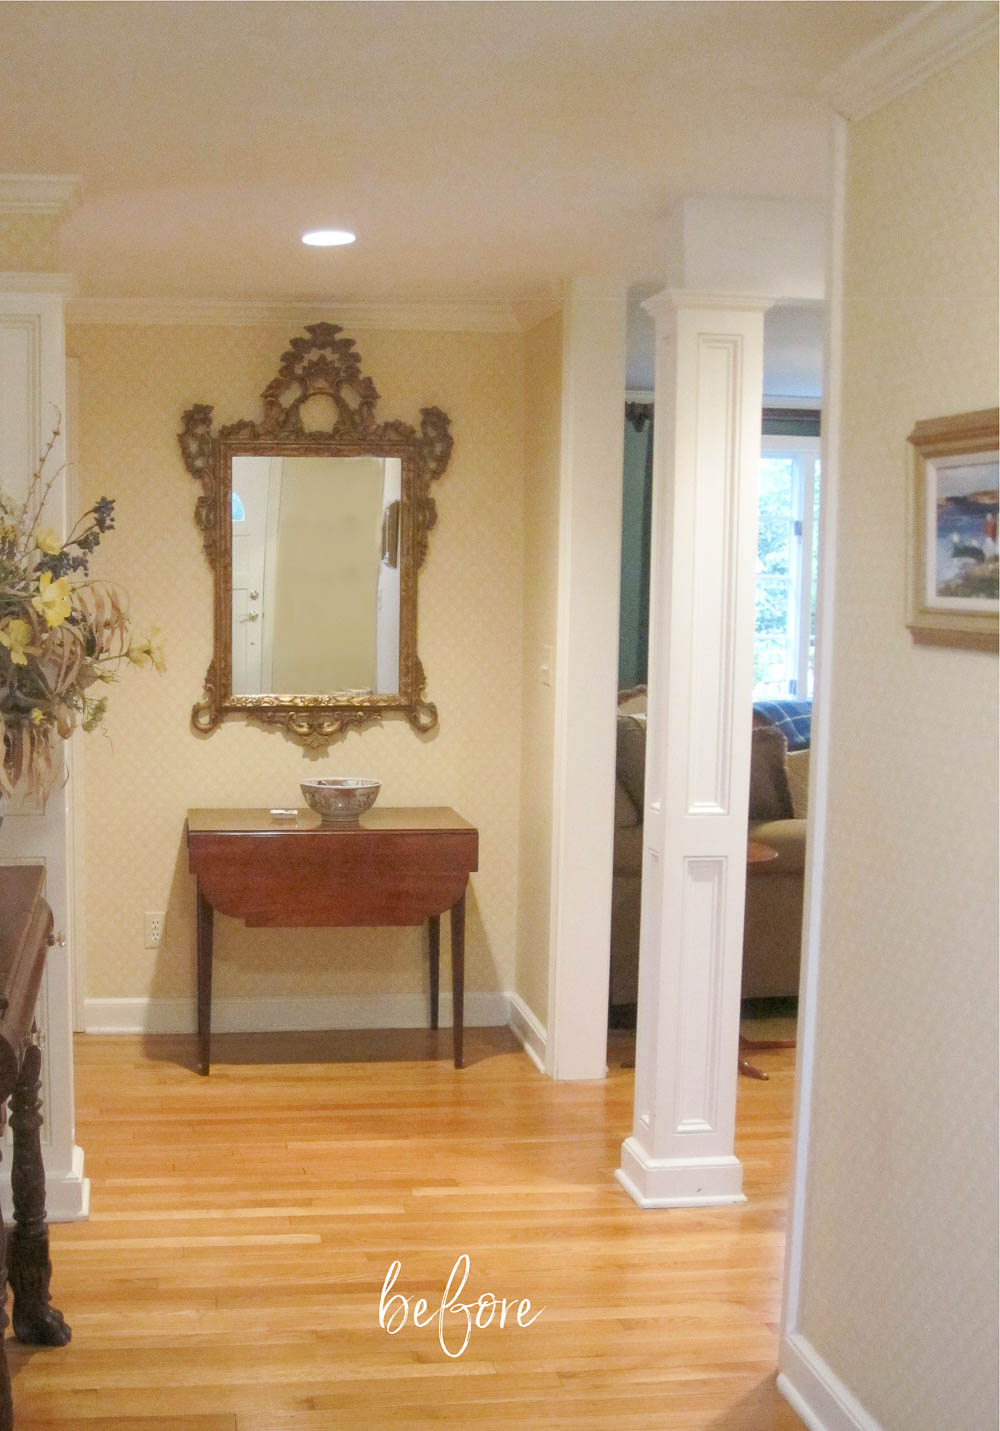 Our entryway before my makeover